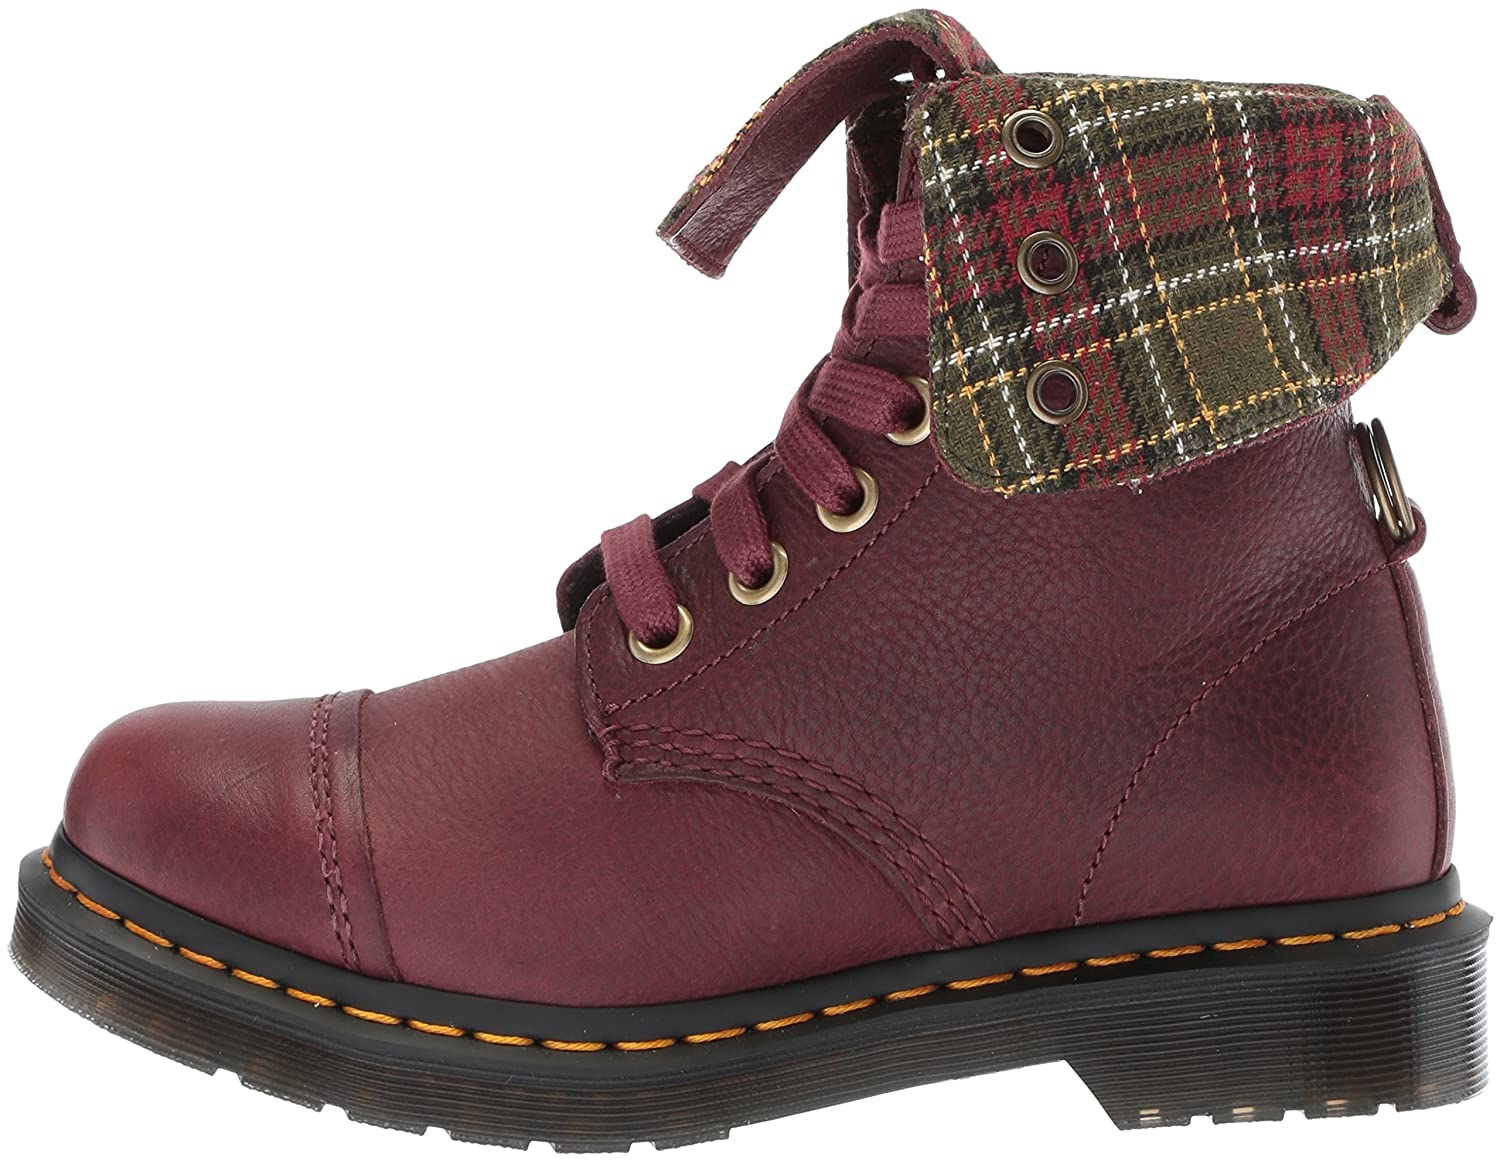 Dr. Martens Red Women's Aimilita FL Cherry Red Martens Ankle Boot B078GYKP8N 8.5 B(M) US|Cherry Red 8980dd